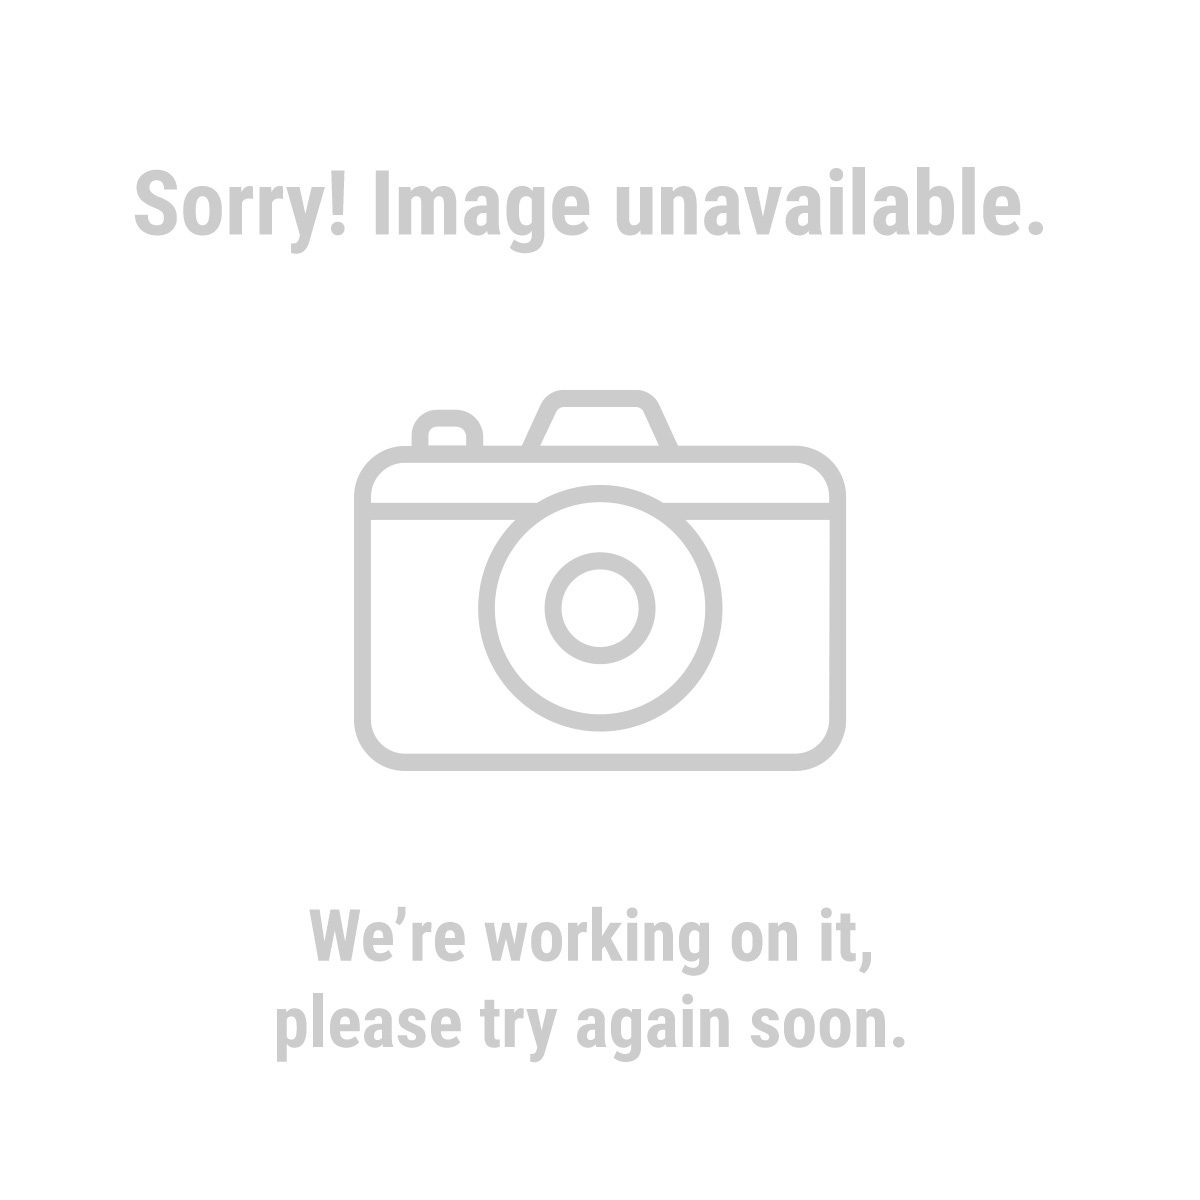 Meguiar's 62224 32 Oz. Meguiar's Ultra Finishing Compound